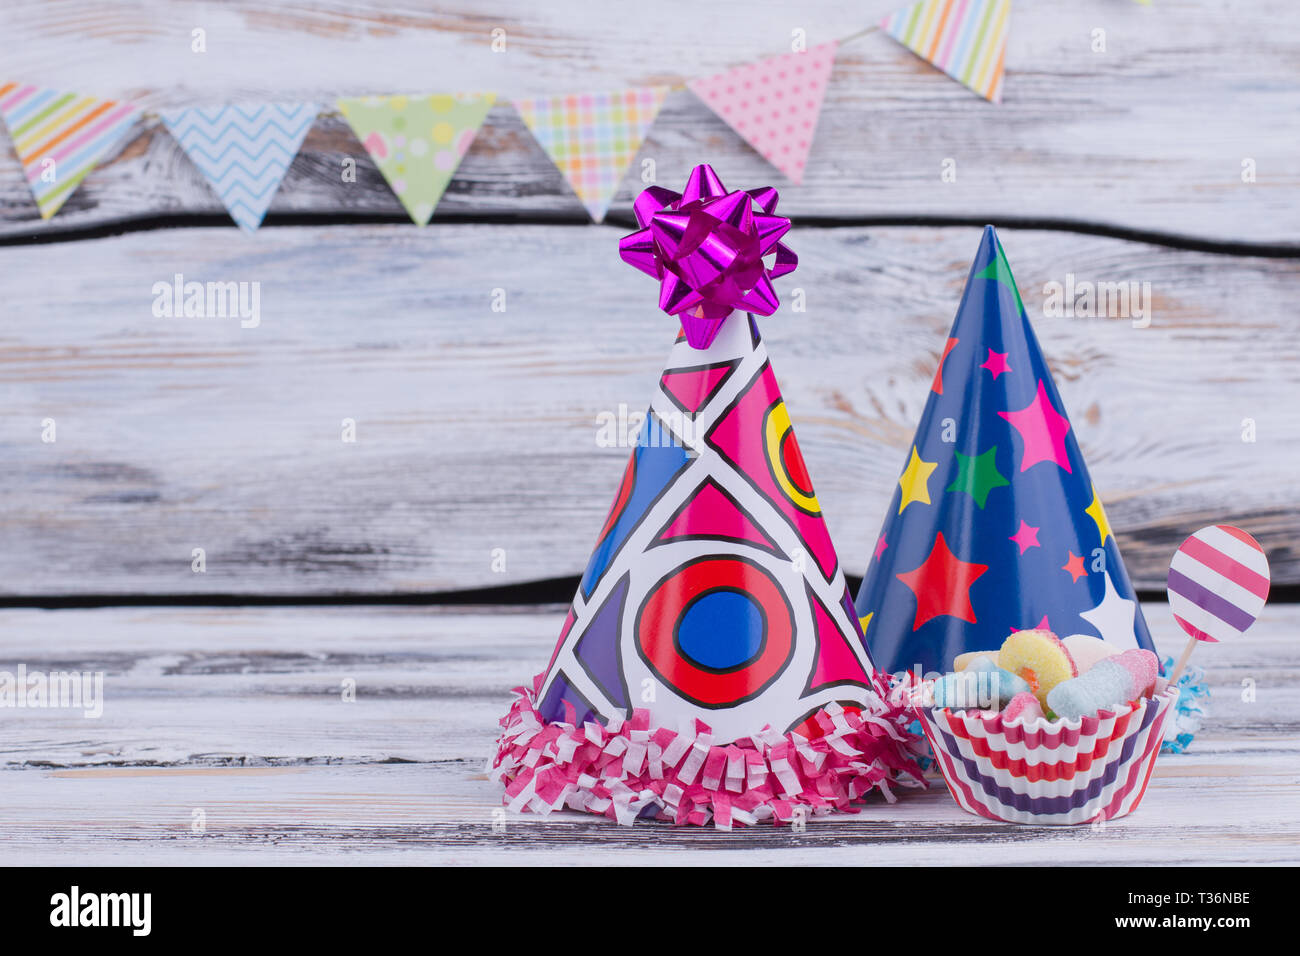 594ca2c607616 Carnival or Birthday party decorations. Decorated paper hats and candies on  wooden background. Concept of kids Birthday party.